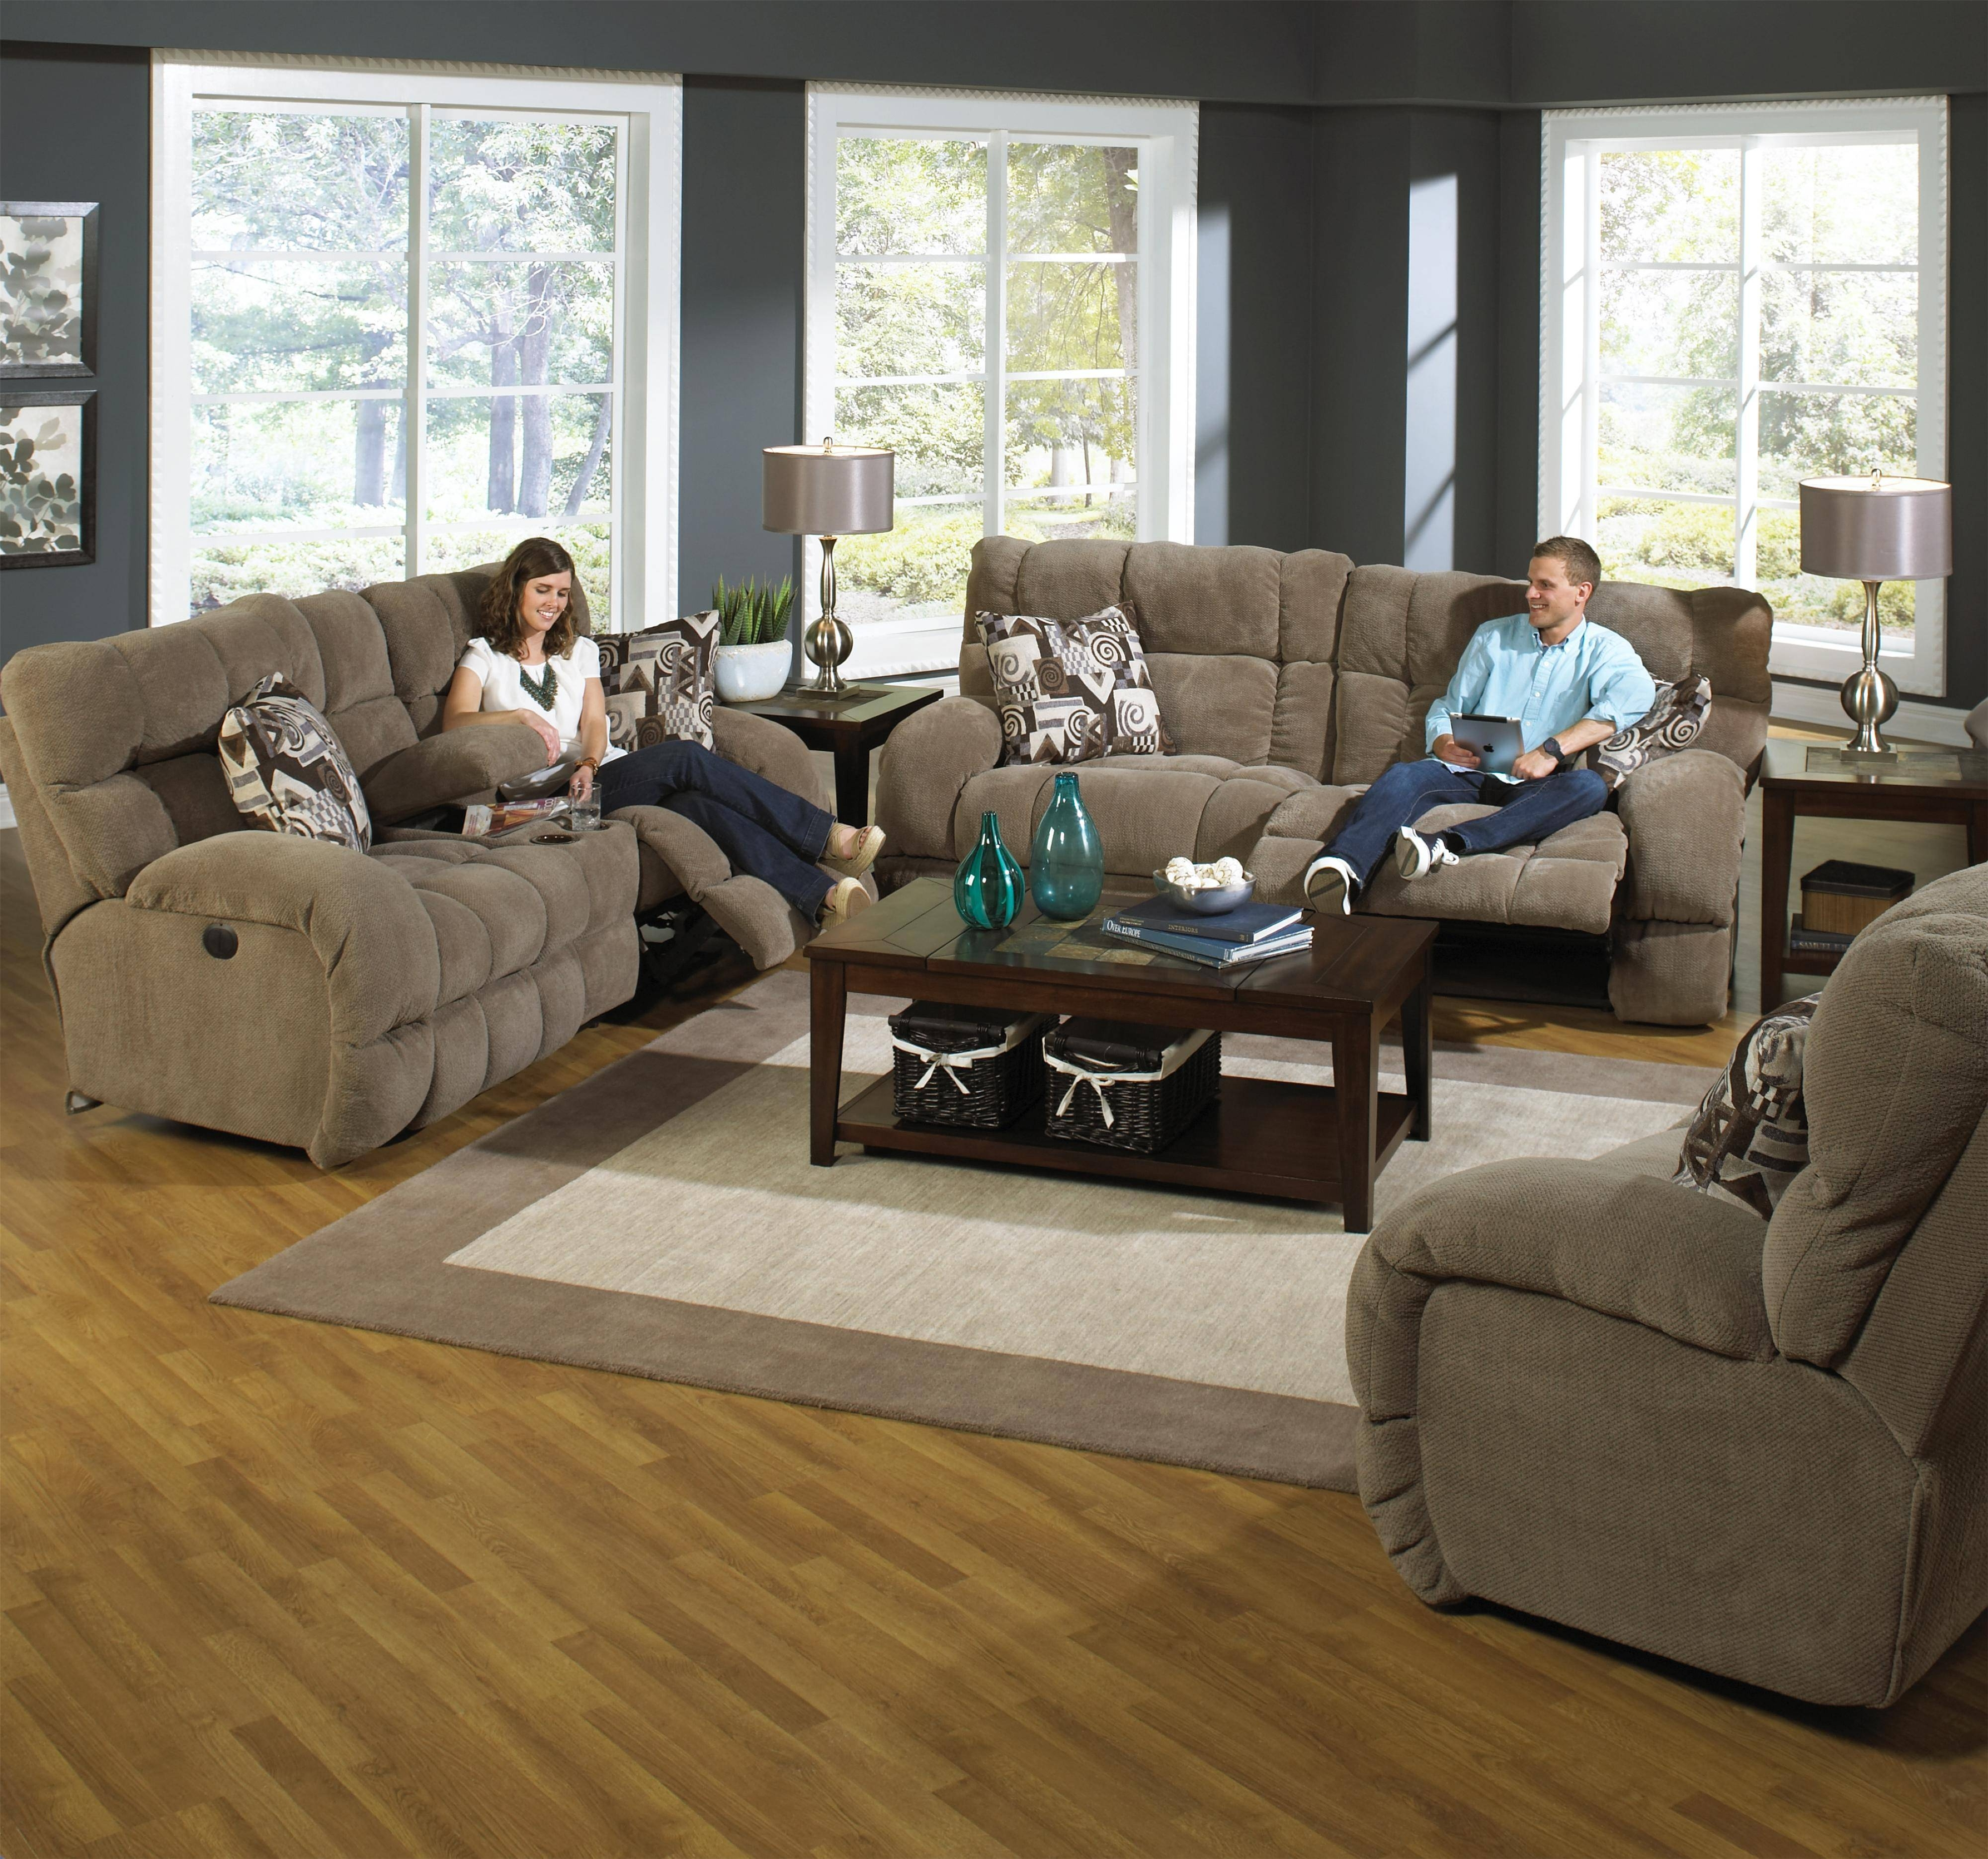 Power Lay Flat Reclining Sofa With Wide Seatscatnapper | Wolf with regard to Catnapper Reclining Sofas (Image 15 of 15)